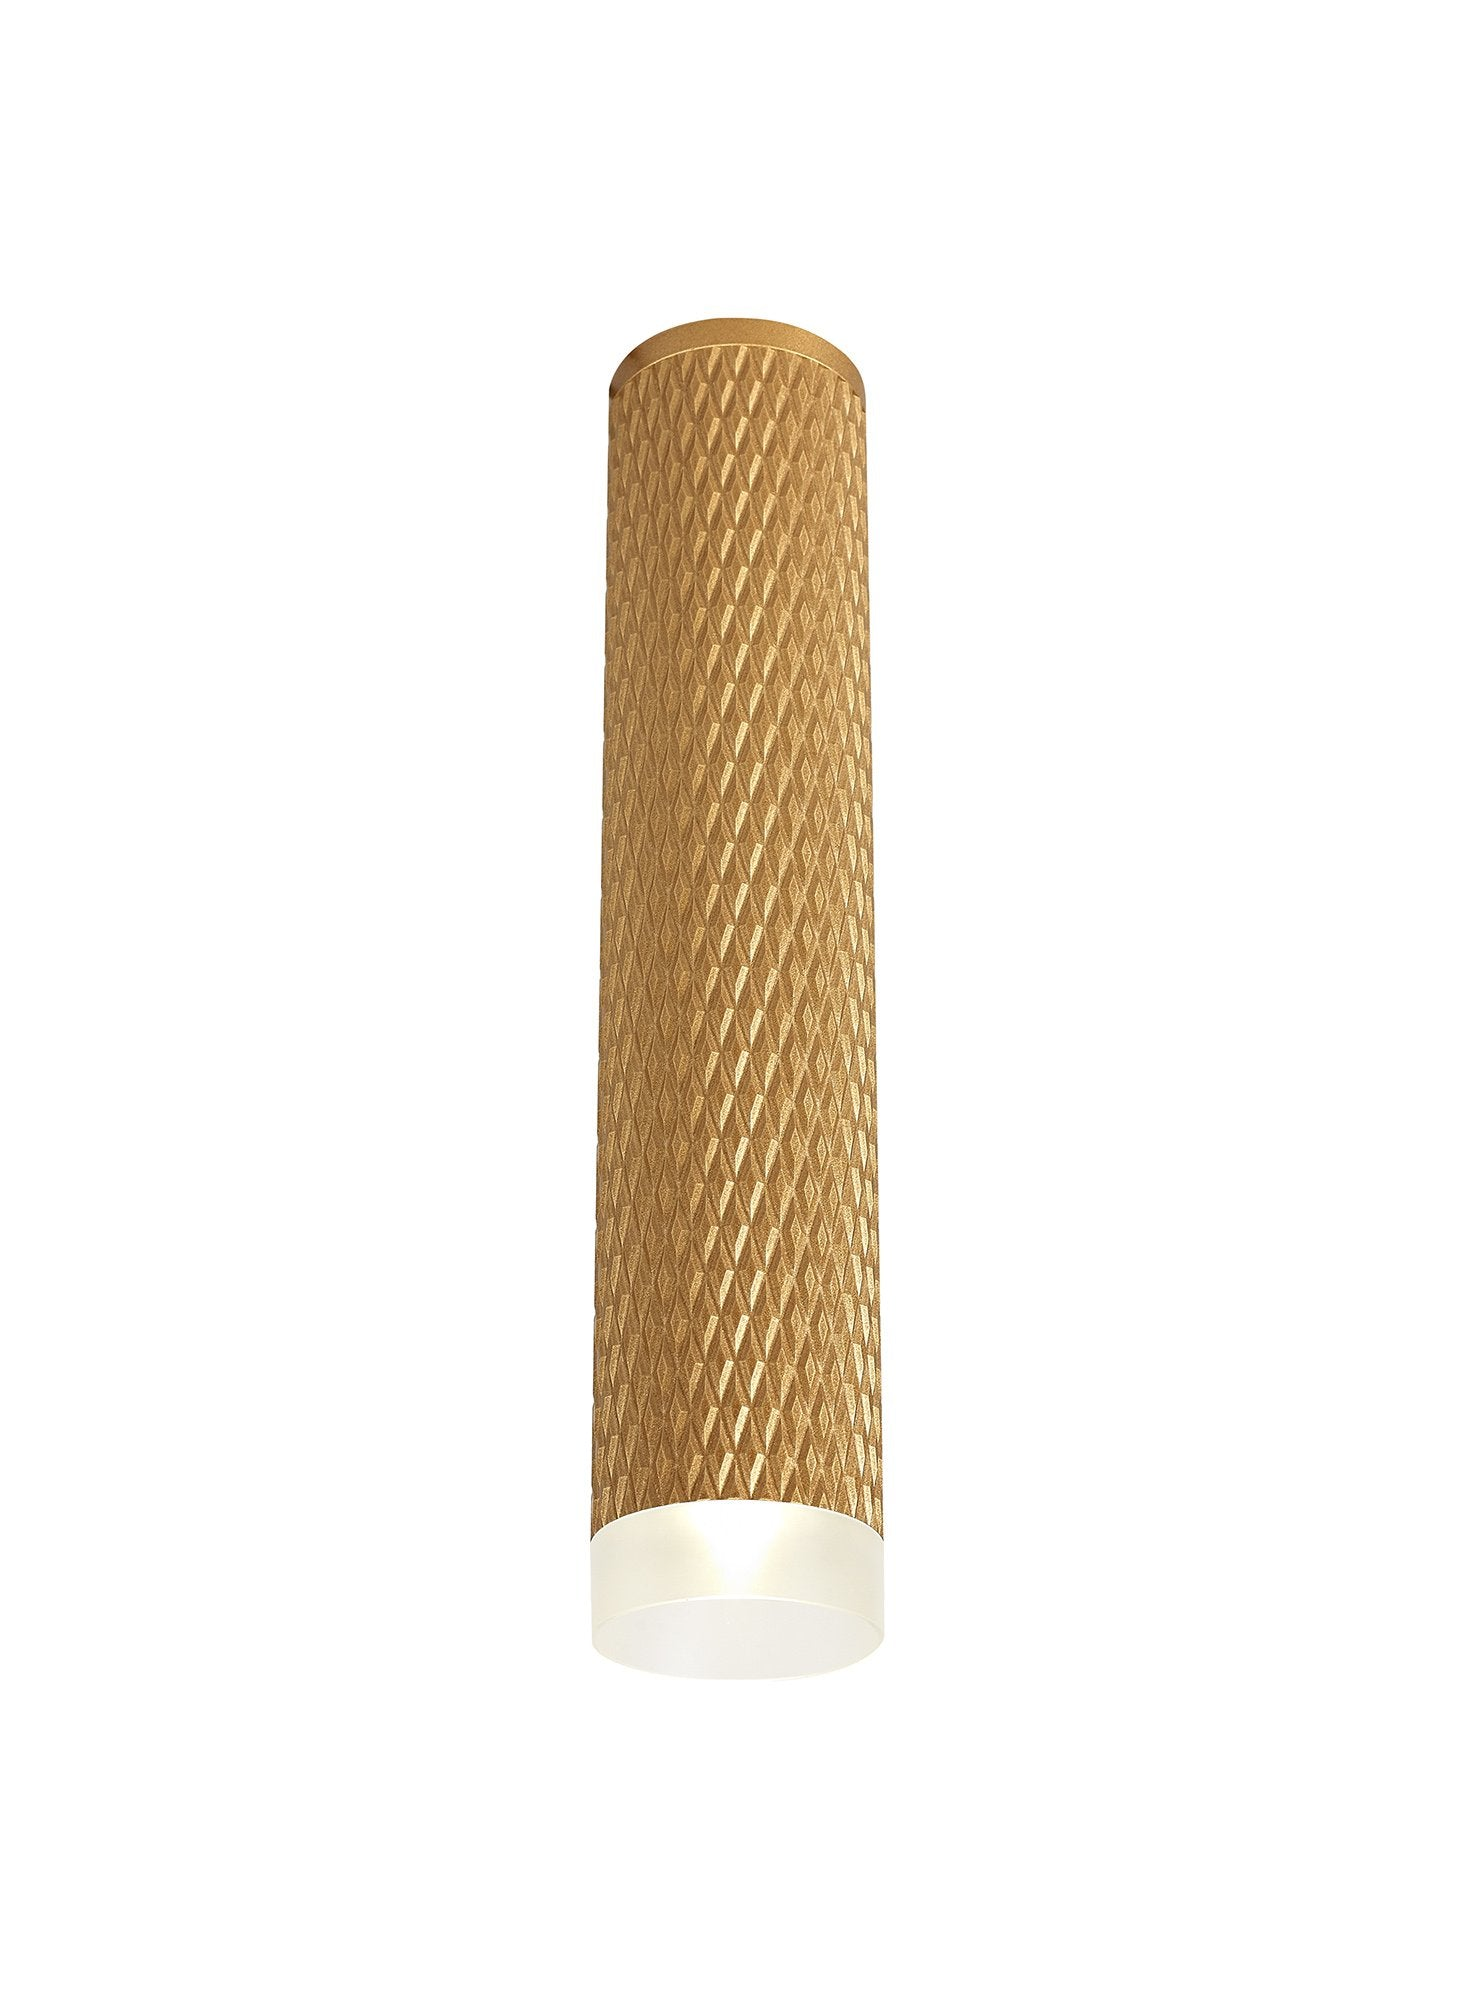 DELPH 1 Light 30cm Surface Mounted Ceiling GU10, Champagne Gold/Acrylic Ring